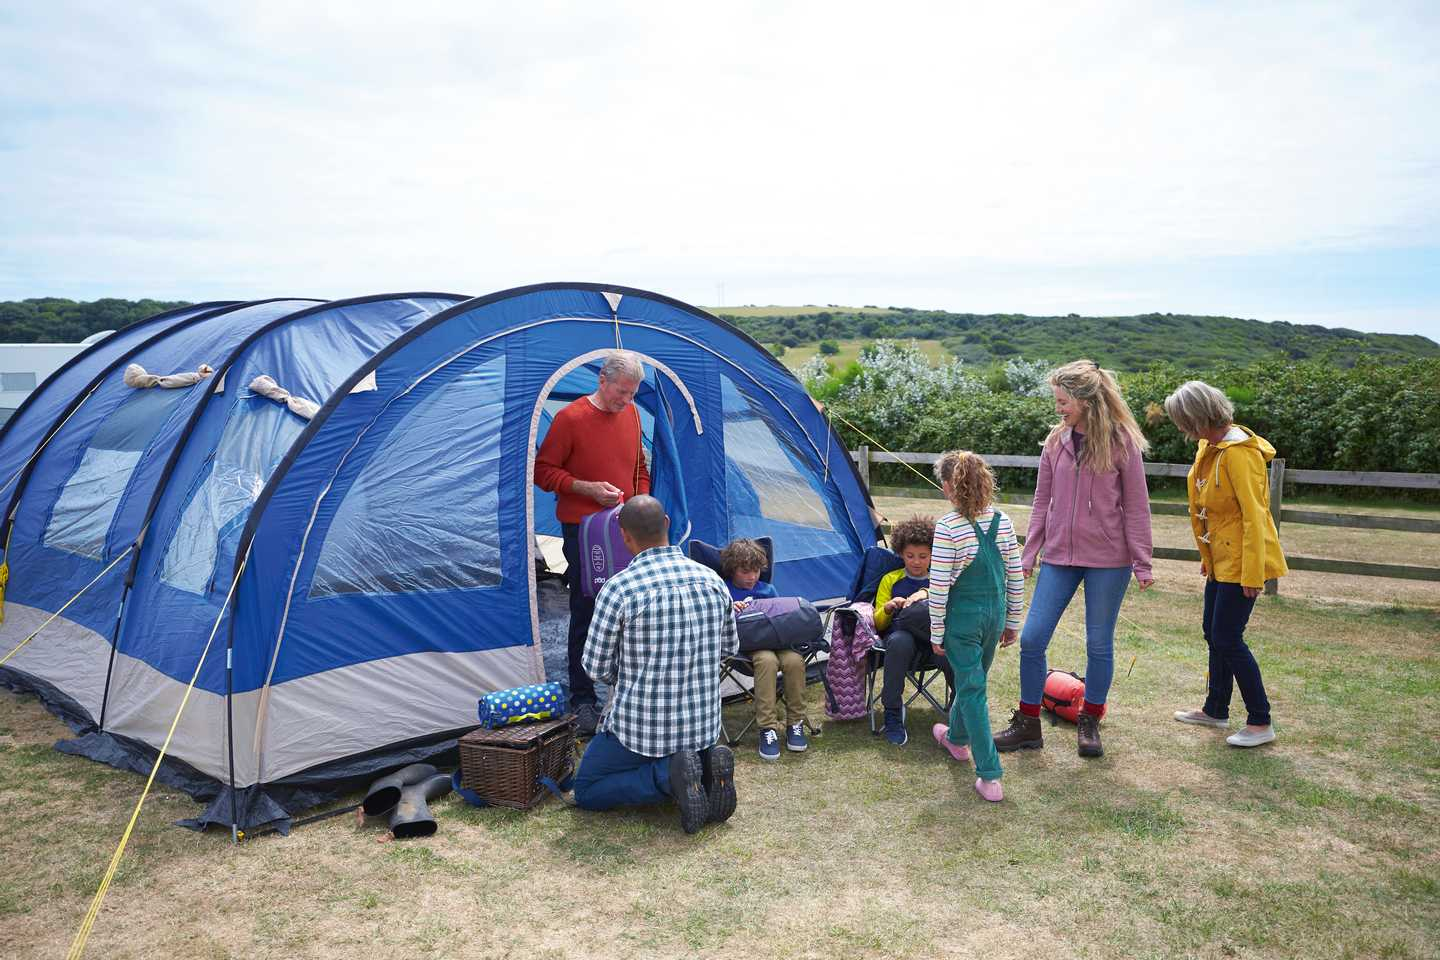 A family putting up their tent at Littlesea